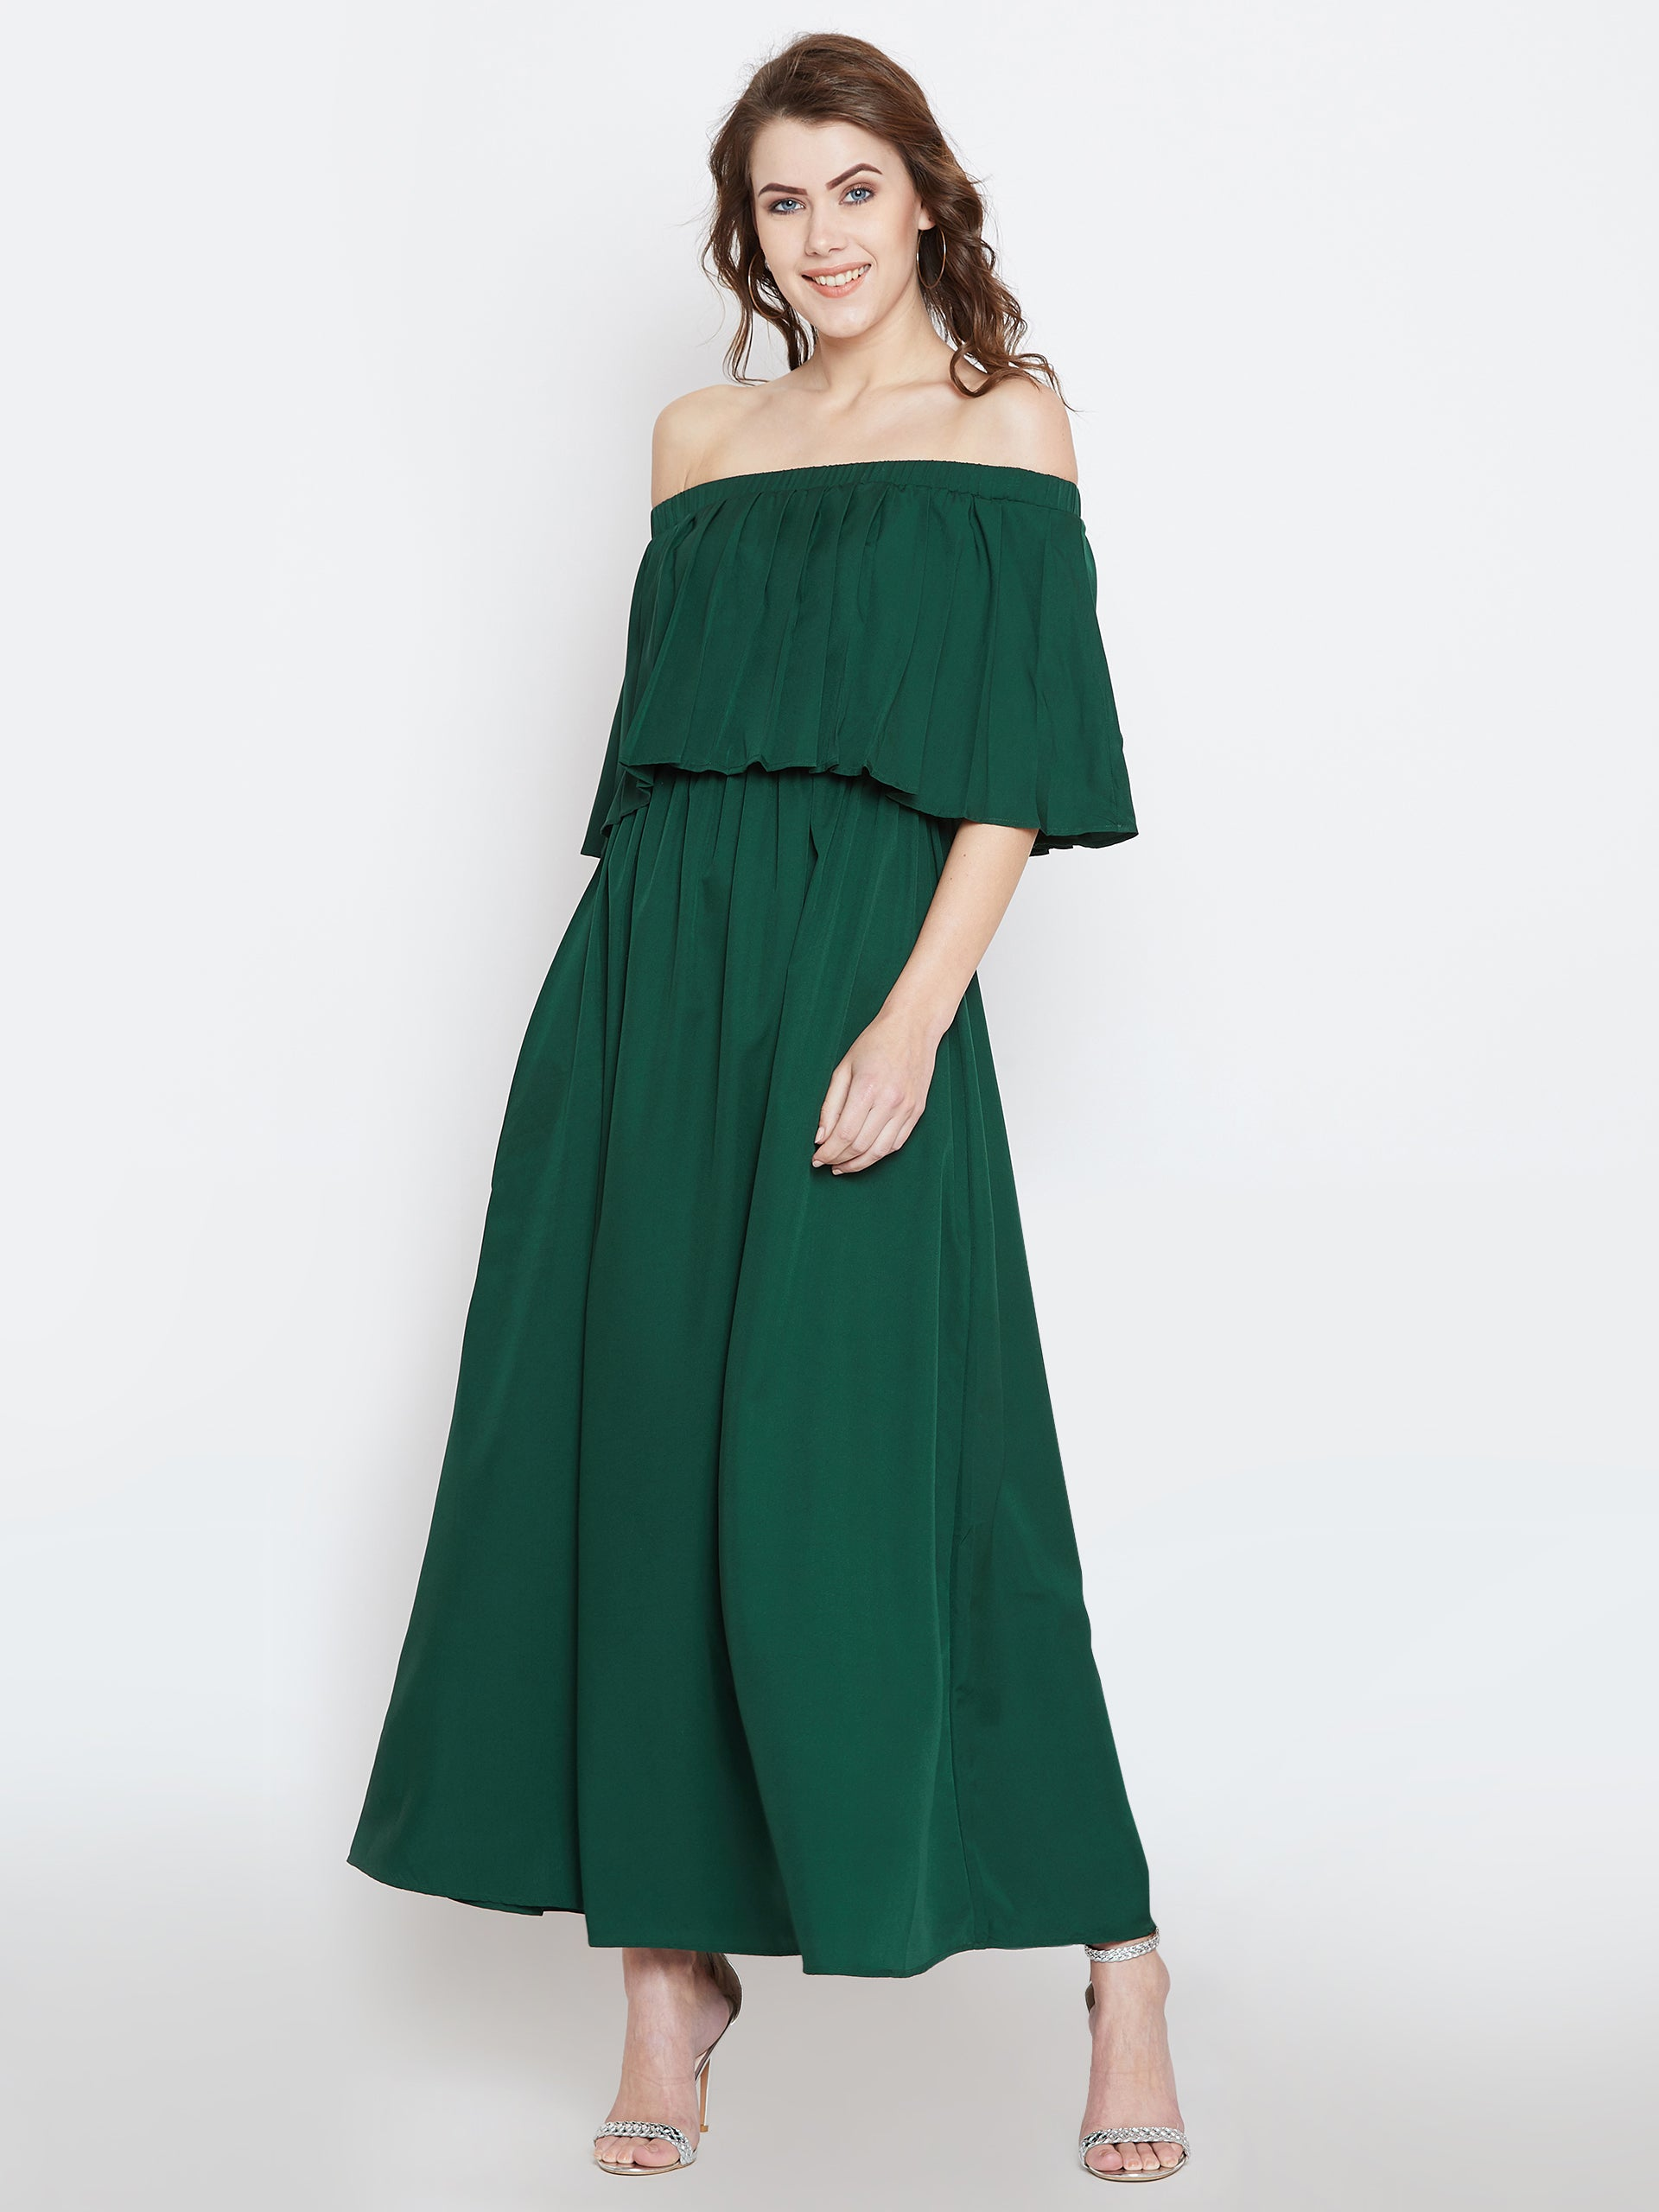 Berrylush Women Solid Green Maxi Dress